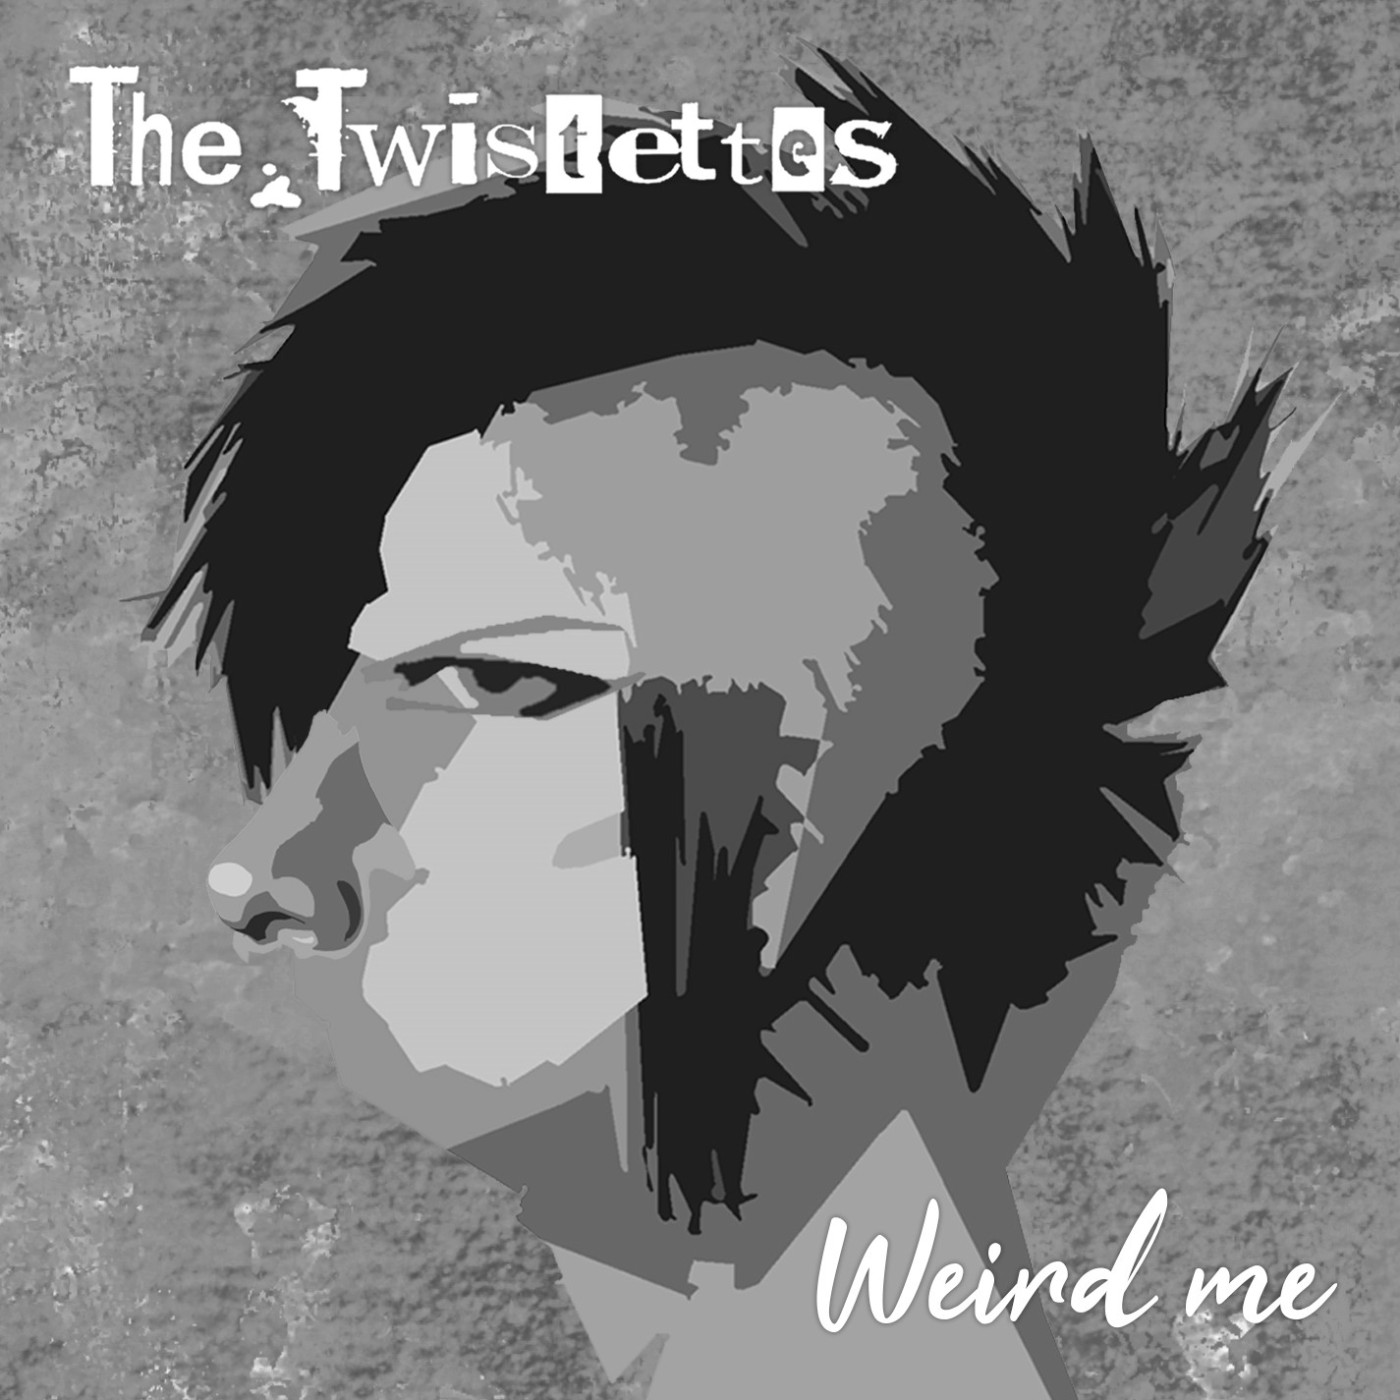 """A greyscale version of The Twistettes' """"Weird Me"""" album cover. It features a print of a person's head, looking side-on. The person has a mohawk and the visible side of their head is shaved. The phrase """"The Twistettes"""" is on the upper-left side of the image, and the phrase """"Weird Me"""" is on the bottom-right."""